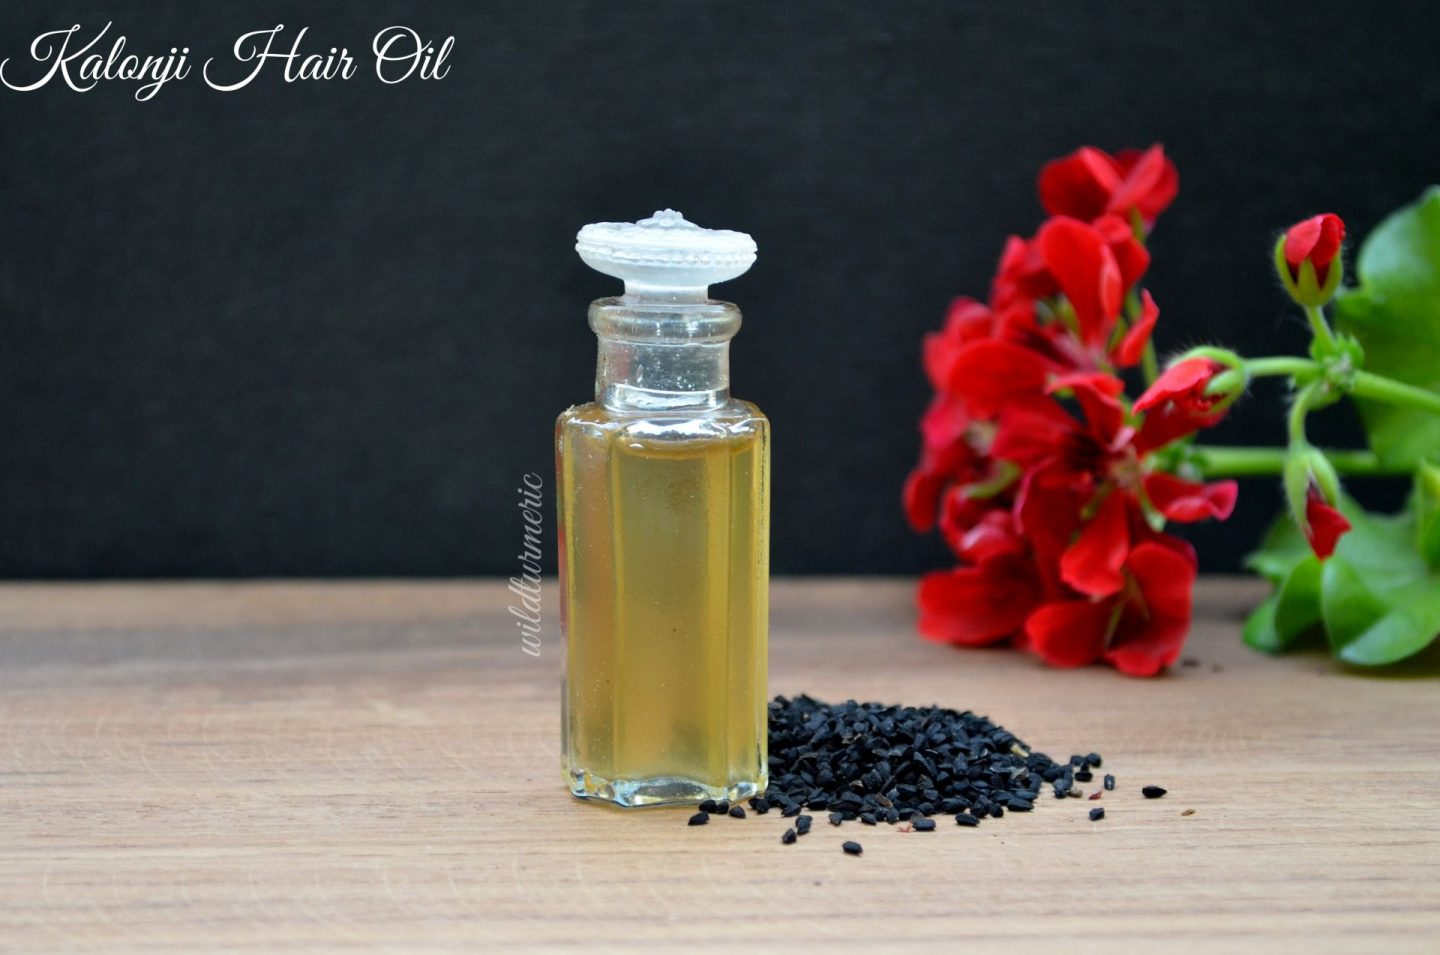 How To Use Kalonji Oil (Black Seed Oil) For Hair Growth | 5 Top Hair Benefits & Uses